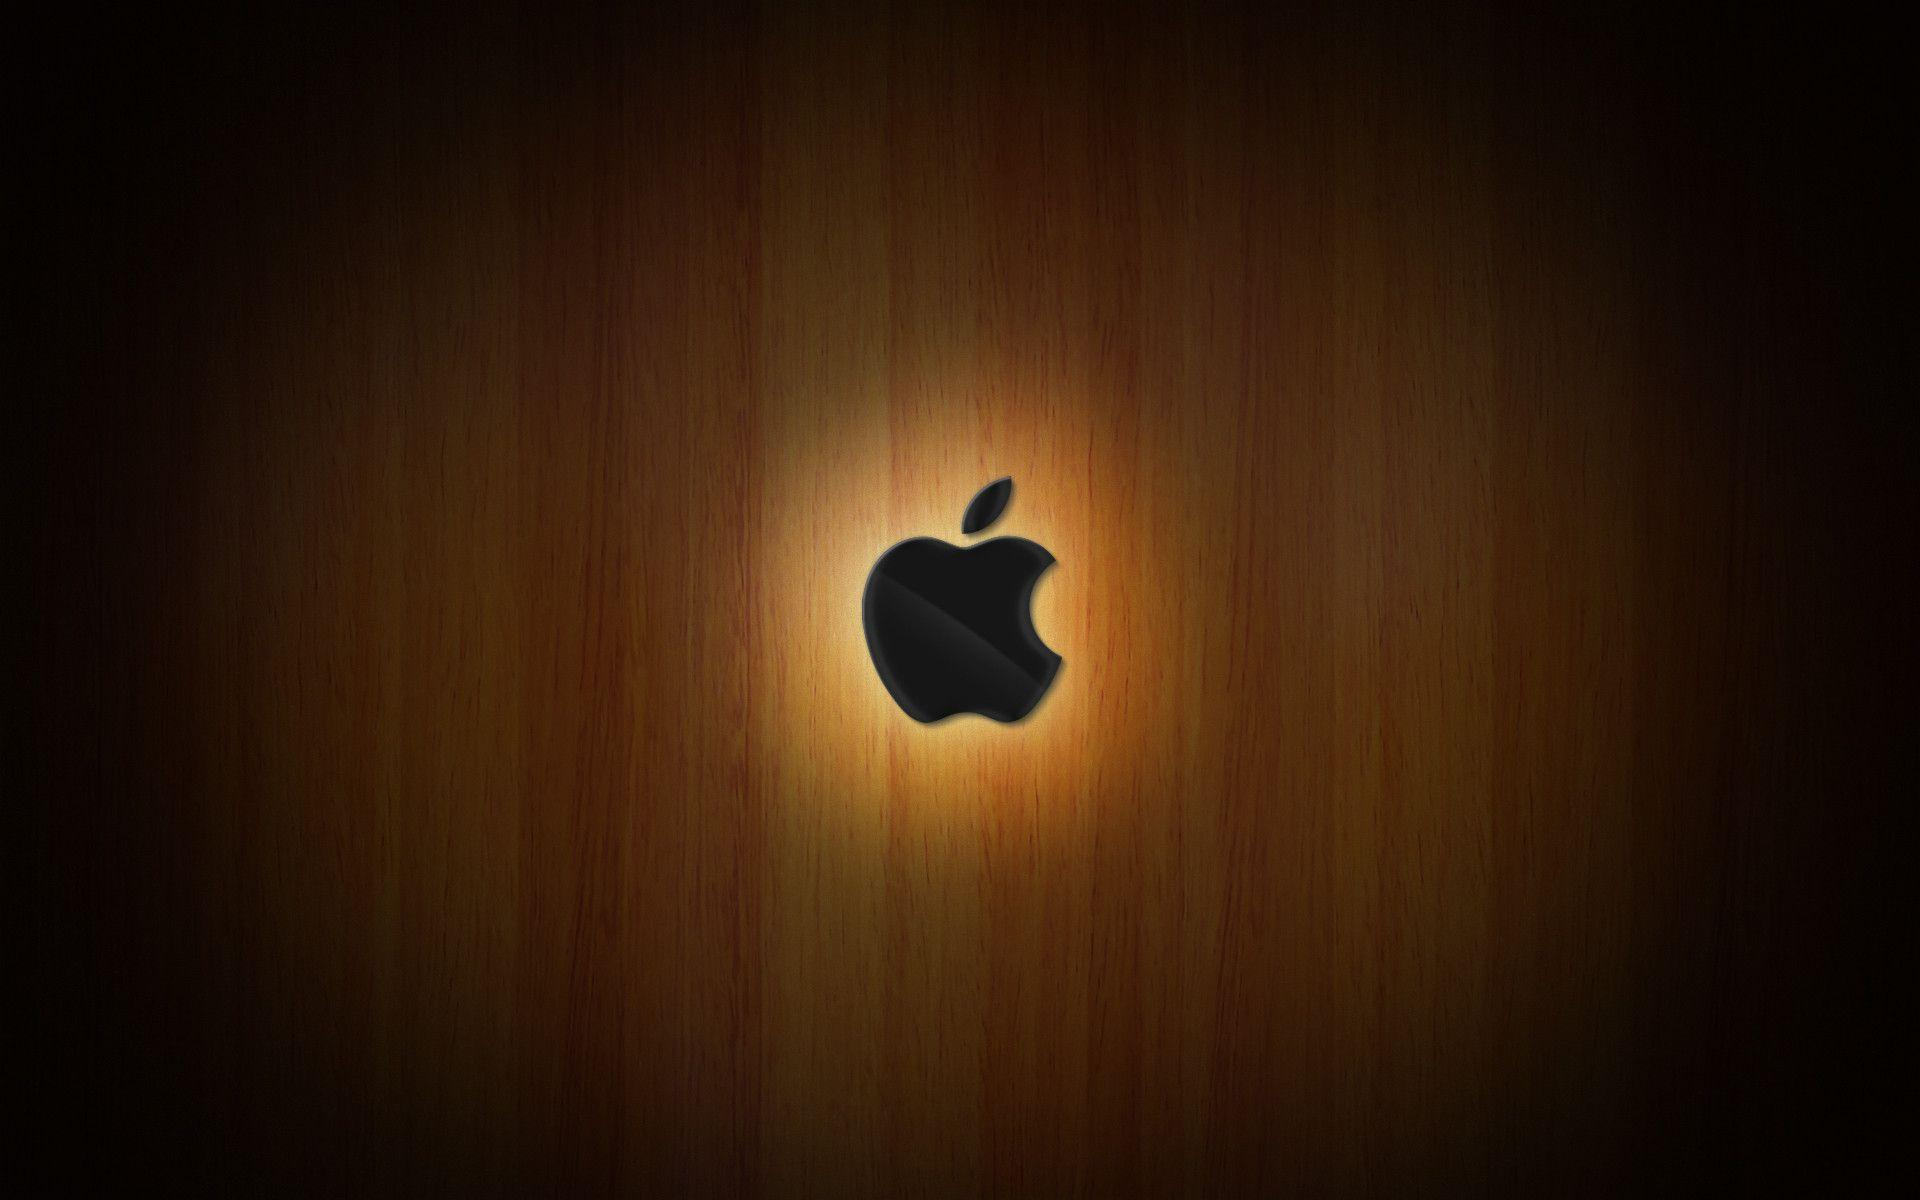 cool apple logos hd. x hd cool apple logo design iphone wallpapers backgrounds 1920×1200 logos n